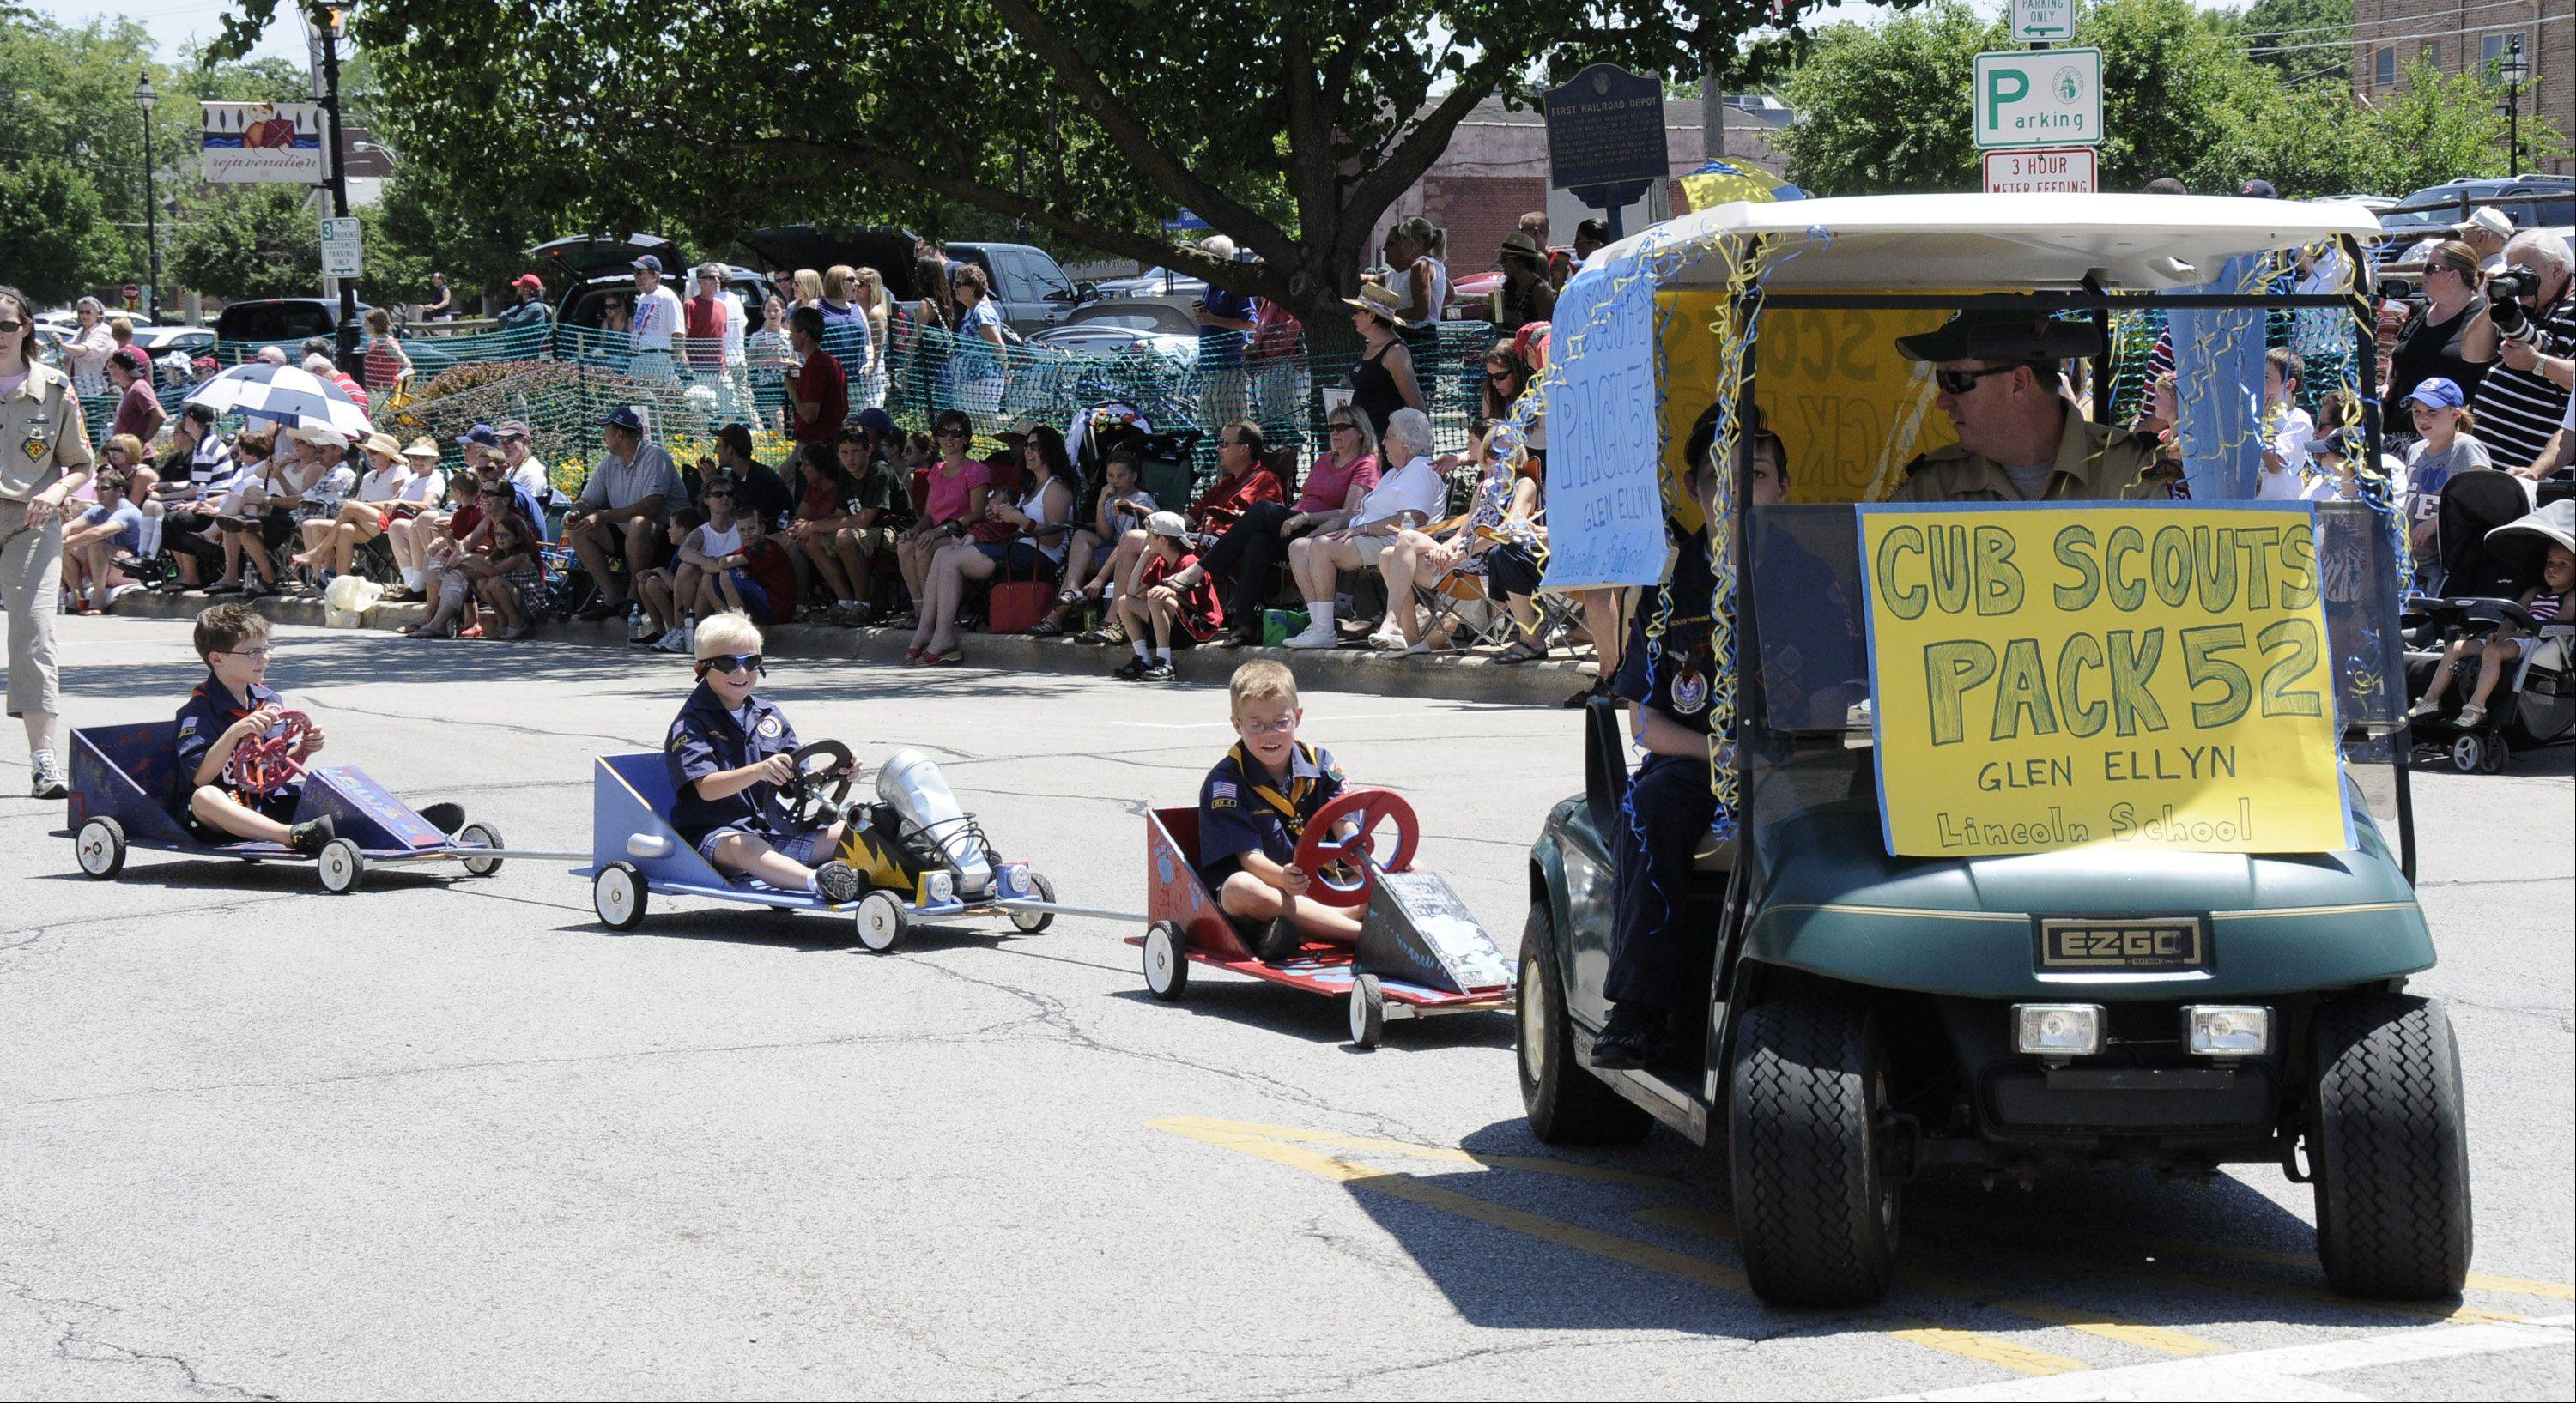 Cub Scouts from Glen Ellyn Pack 52 turn the corner in their go-carts onto Main Street in Glen Ellyn's Independence Day parade.